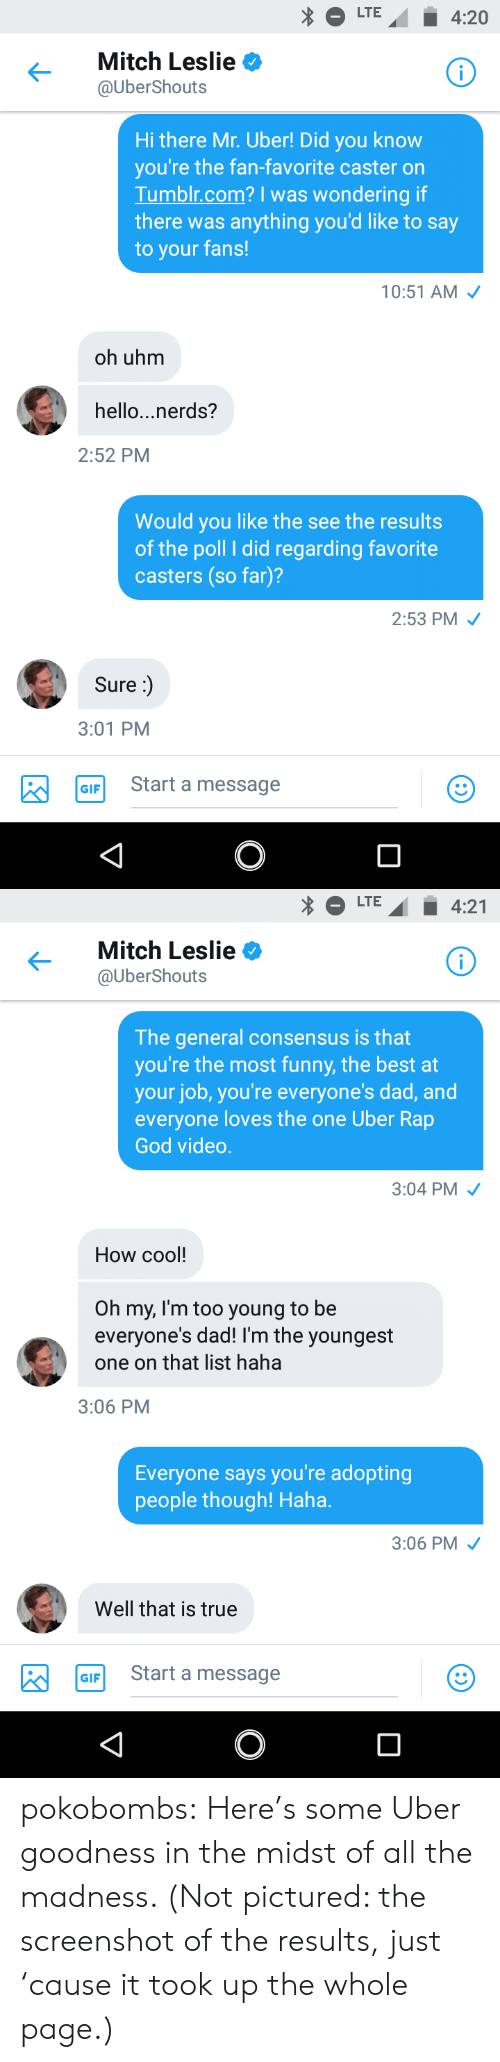 Dad, Funny, and Gif: LTE4:20  Mitch Leslie  UberShouts  Hi there Mr. Uber! Did you know  you're the fan-favorite caster on  Tumblr.com? I was wondering if  there was anything you'd like to say  to your fans!  10:51 AM  oh uhm  hello...nerds?  2:52 PM  Would you like the see the results  of the poll I did regarding favorite  casters (so far)?  2:53 PM  Sure:)  3:01 PM  Start a message   LTE4:21  Mitch Leslie  UberShouts  The general consensus is that  you're the most funny, the best at  your job, you're everyone's dad, and  everyone loves the one Uber Rap  God vided.  3:04 PM  How cool!  Oh my, I'm too young to be  everyone's dad! I'm the youngest  one on that list haha  3:06 PM  Everyone says you're adopting  people though! Haha.  3:06 PM  Well that is true  GIF Start a message pokobombs:  Here's some Uber goodness in the midst of all the madness. (Not pictured: the screenshot of the results, just 'cause it took up the whole page.)